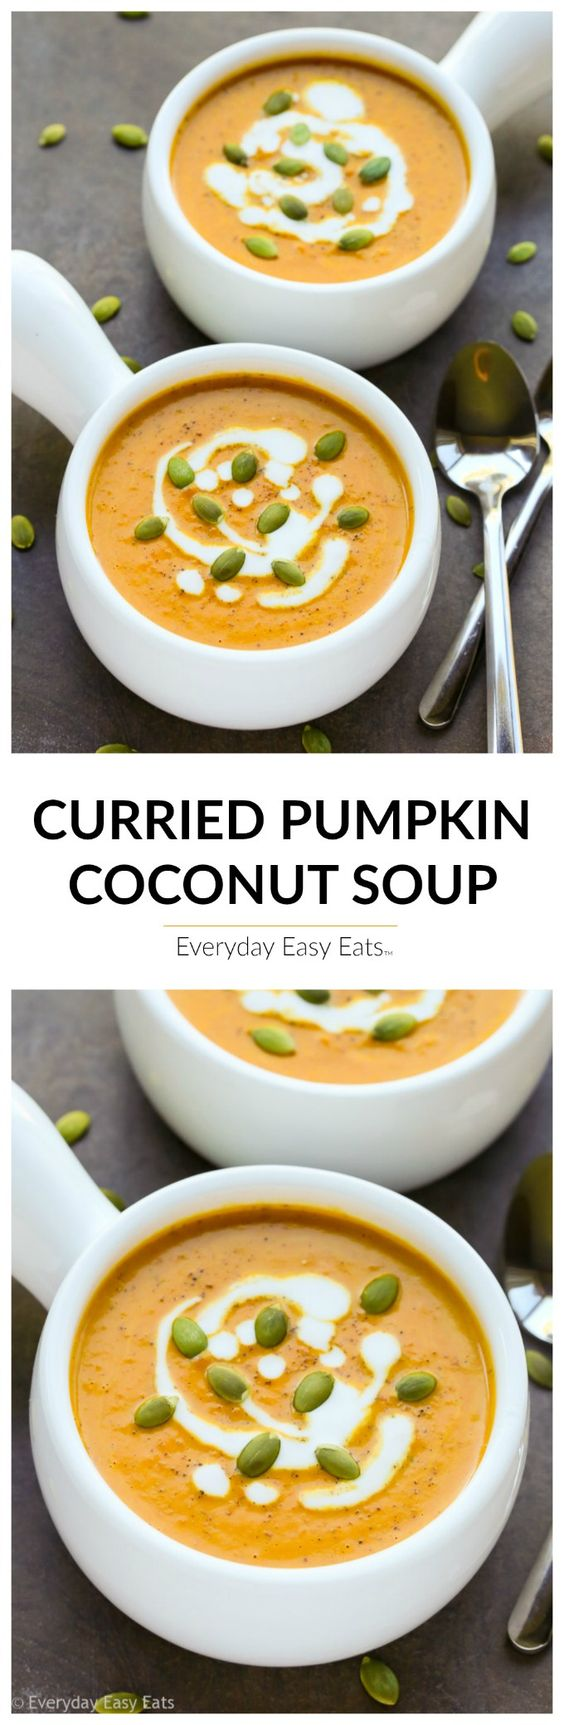 Curried Pumpkin Coconut Soup Recipe | Everyday Easy Eats - The BEST Homemade Soups Recipes - Easy, Quick and Yummy Lunch and Dinner Family Favorites Meals Ideas